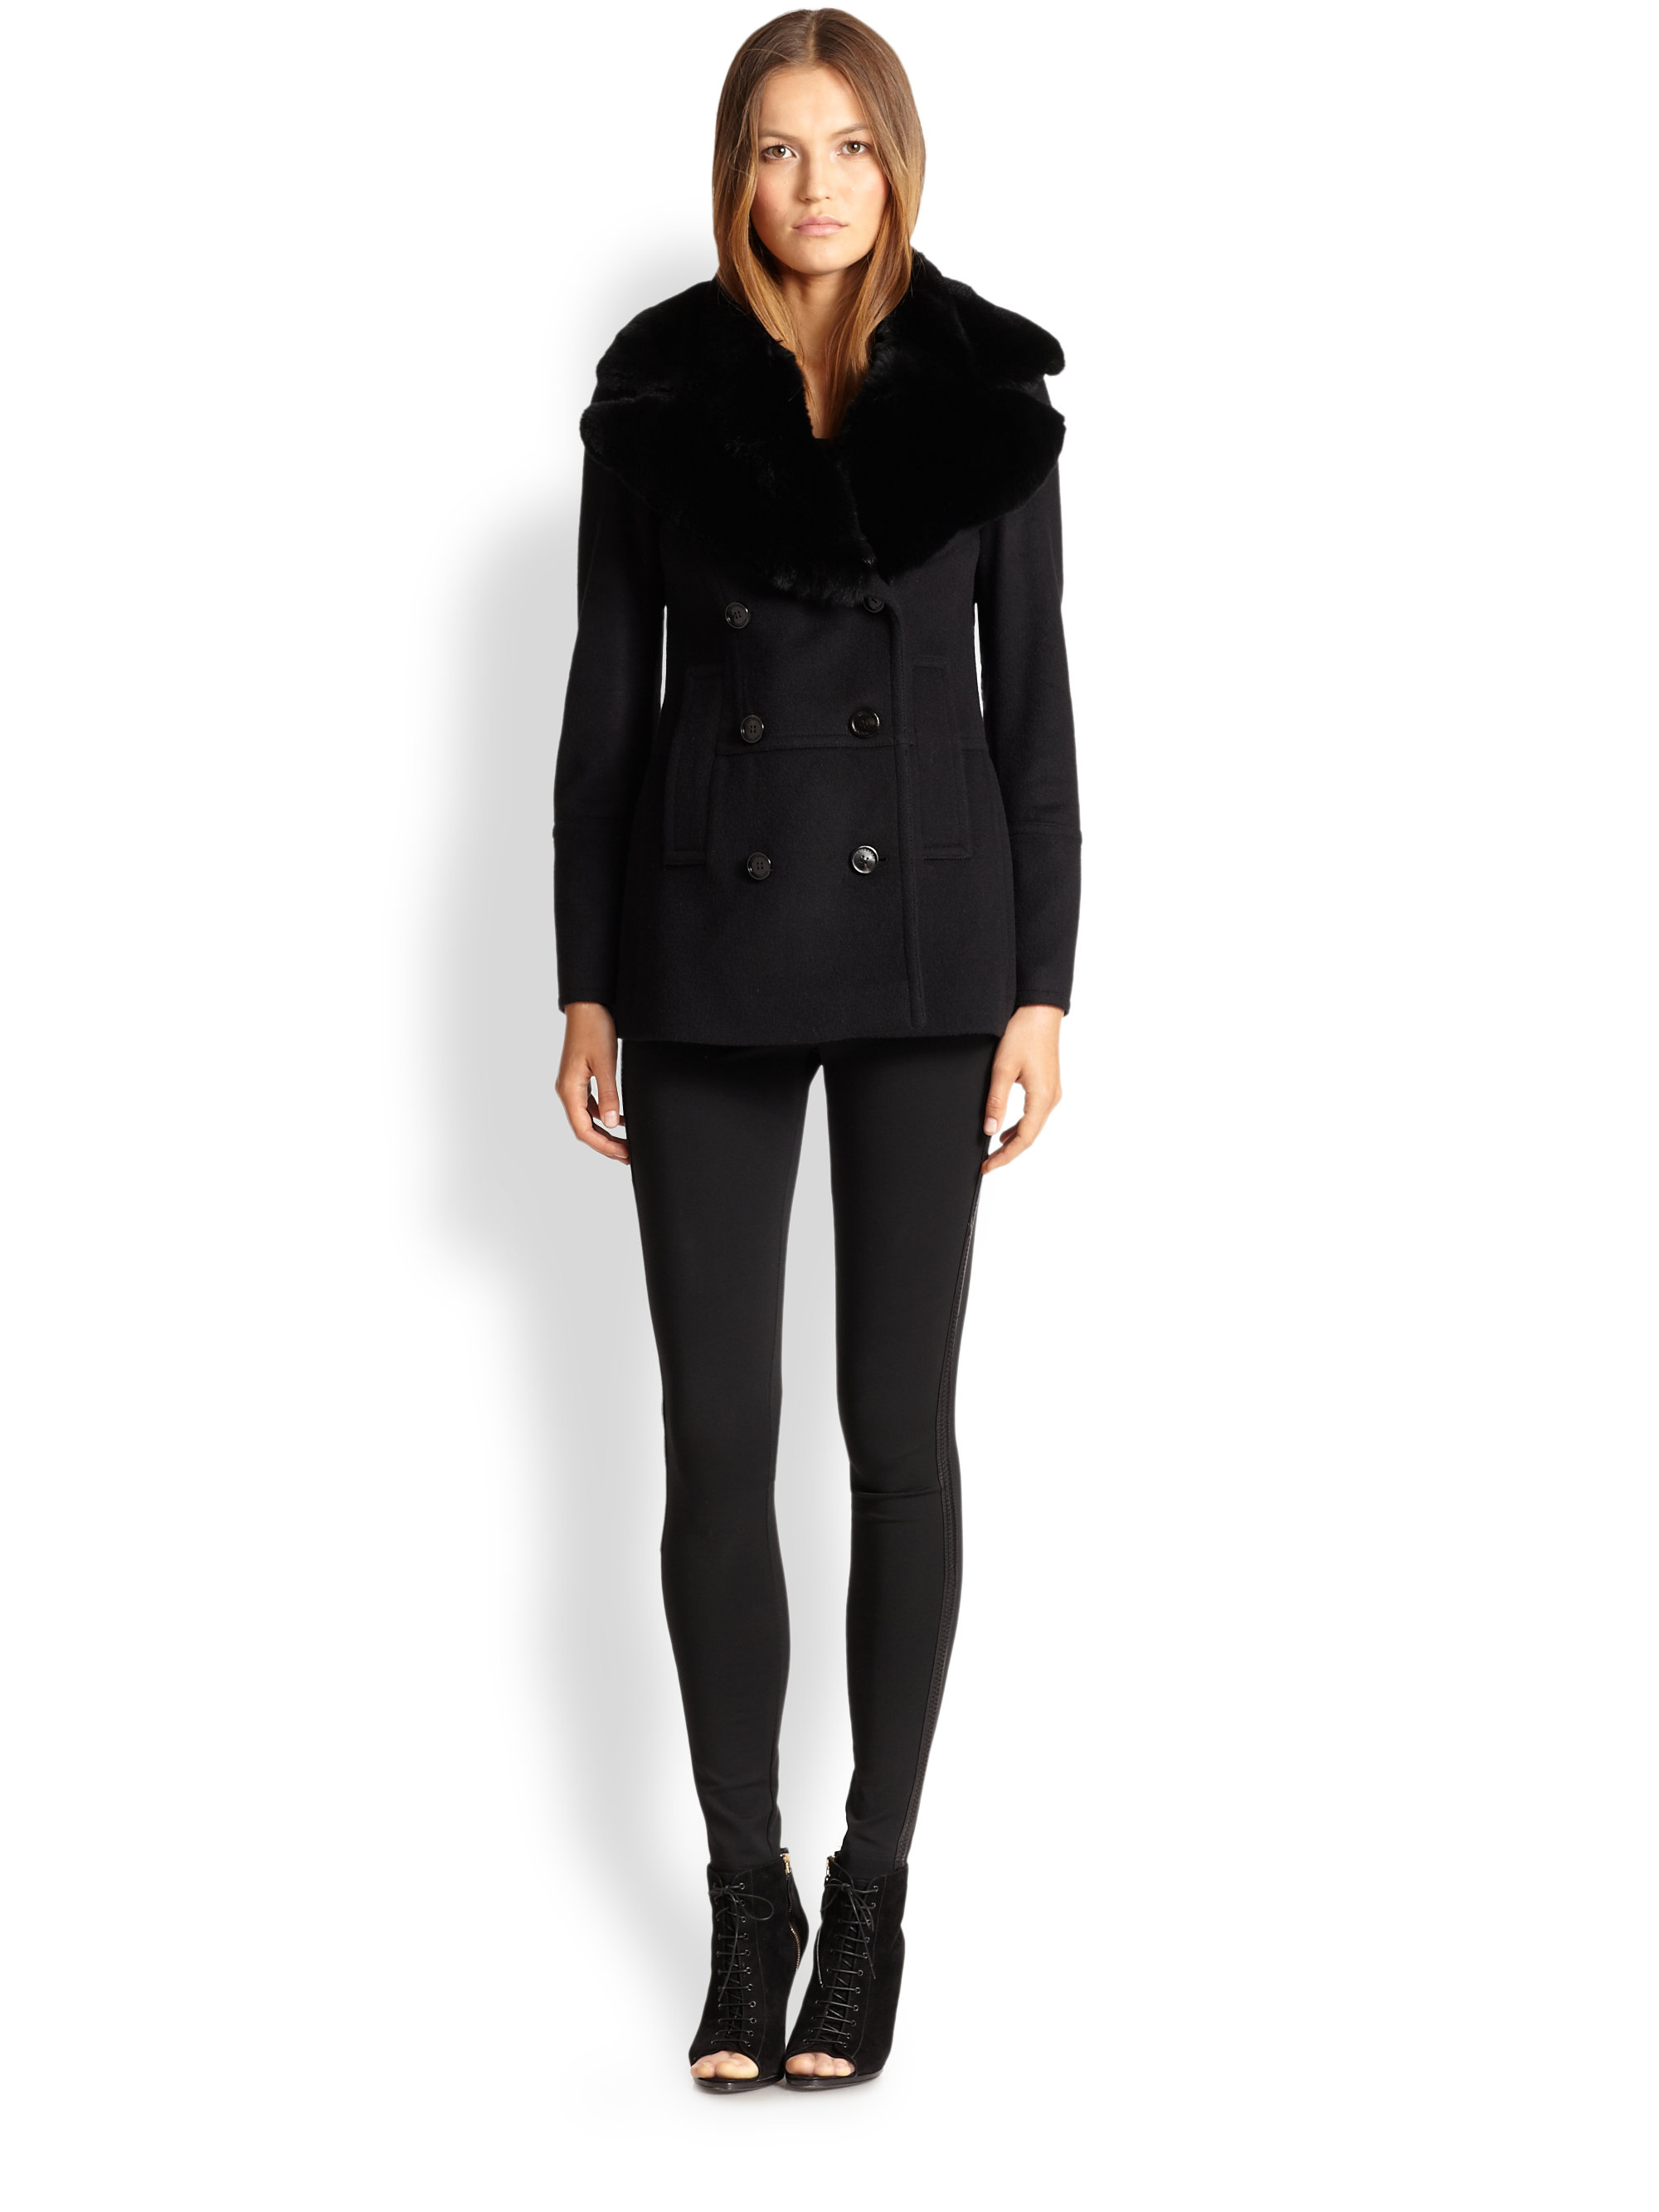 Burberry Melfield Fur-Collar Wool & Cashmere Coat in Black | Lyst